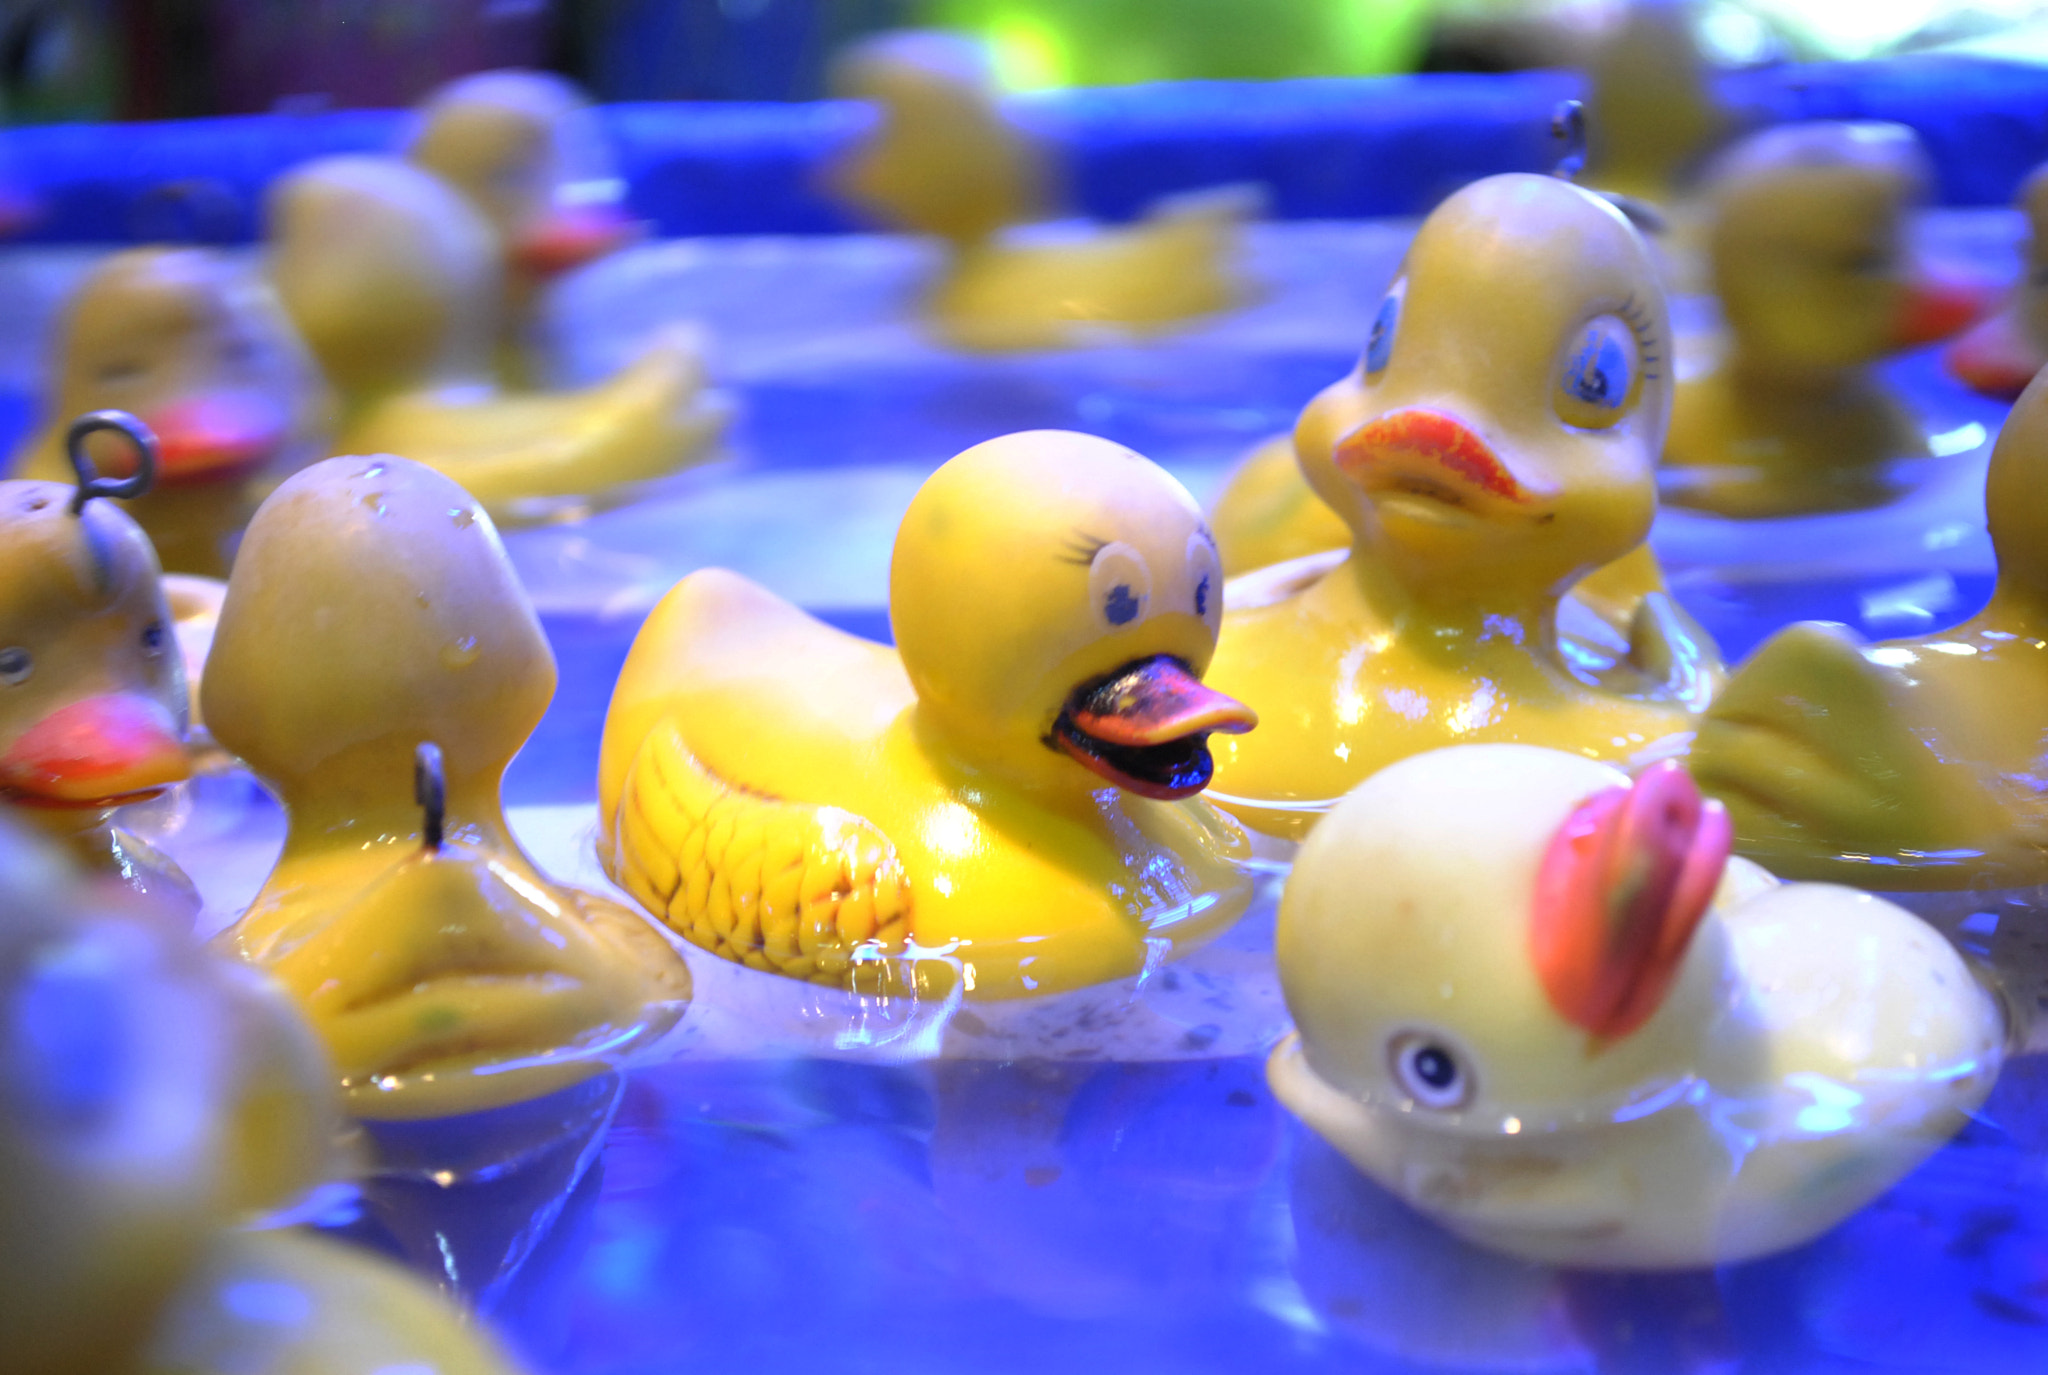 Photograph Fun Ducky by Damian Lestrade on 500px